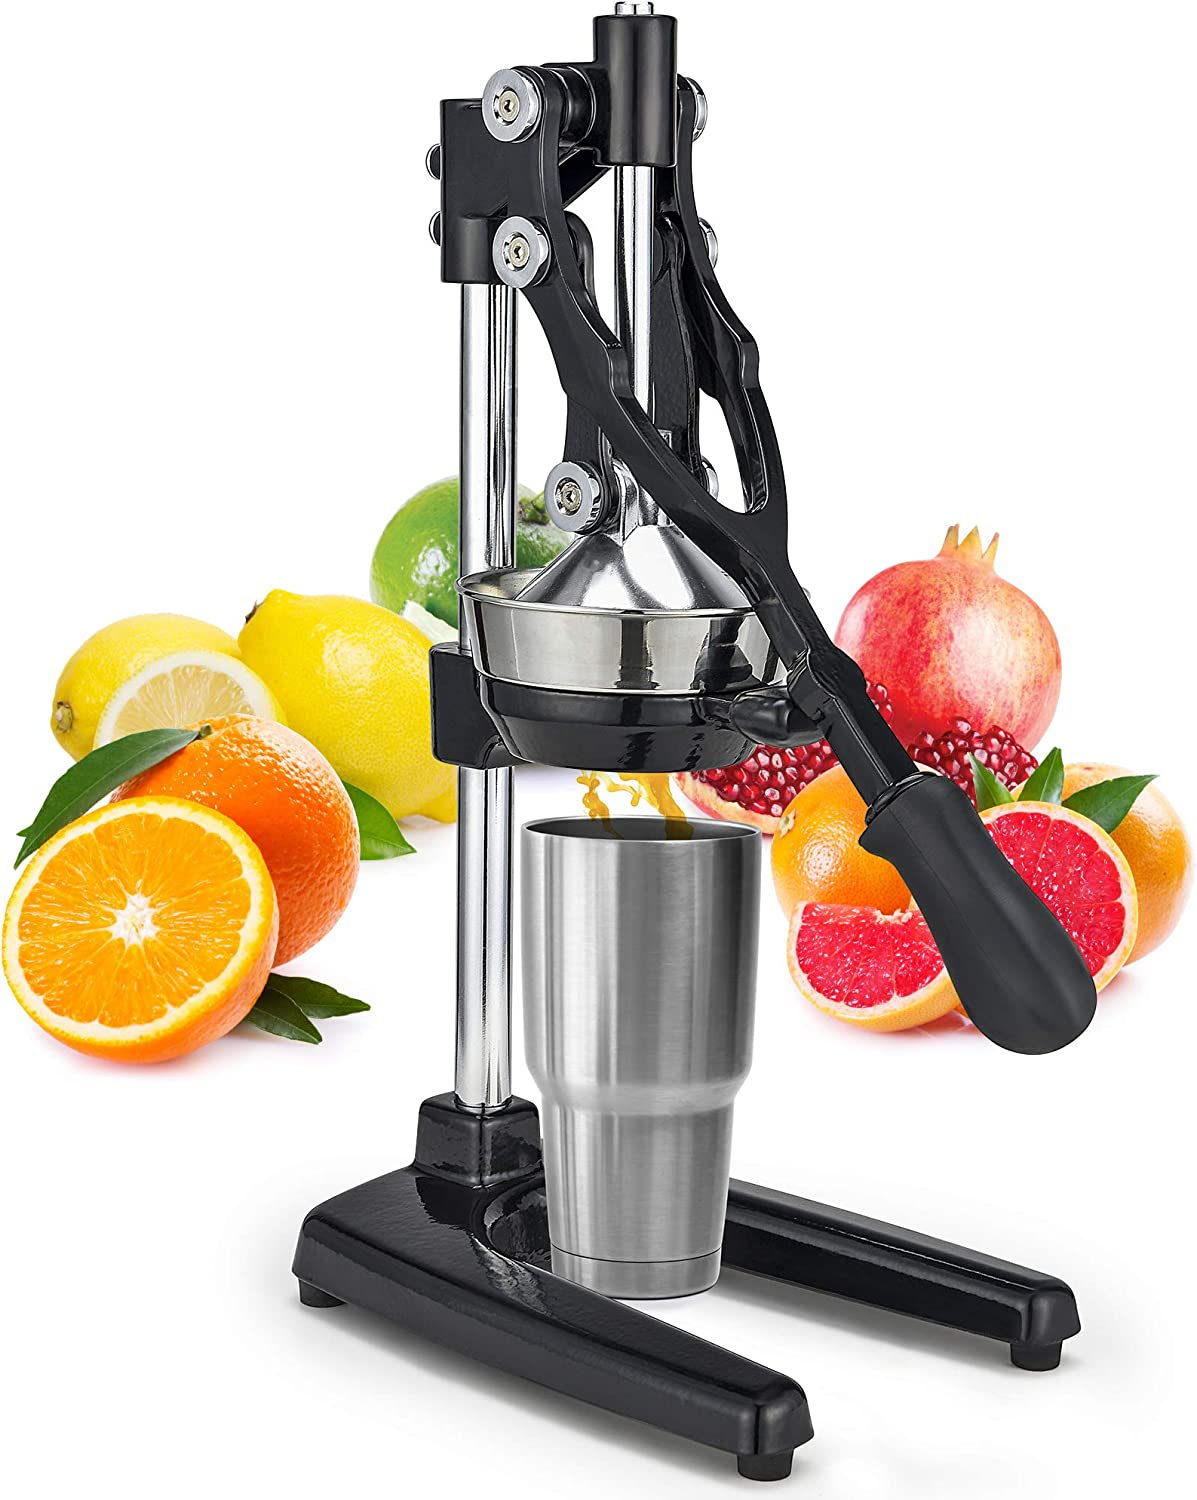 Zulay Extra Tall Orange Juicer - Manual Orange Juice Squeezer, Fits Tumblers, Tall Glasses and Cups Easily, Lemonade Stands Stand Juicer